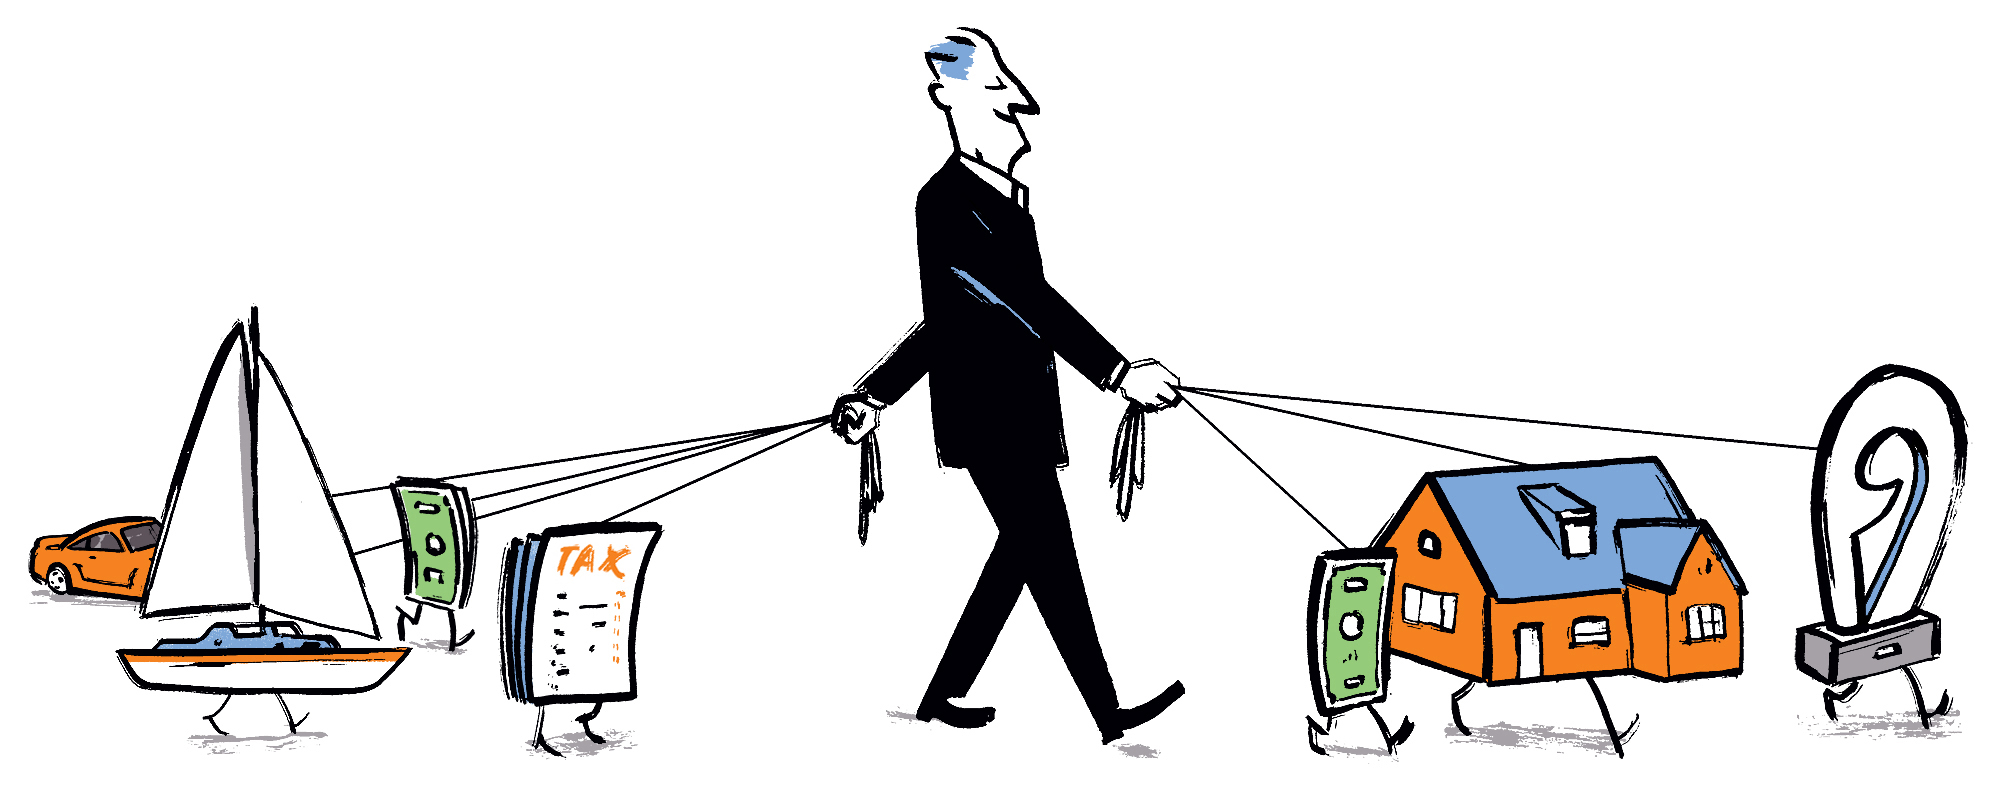 Cartoon showing how Aspiriant implements wealth management services uniquely for every client